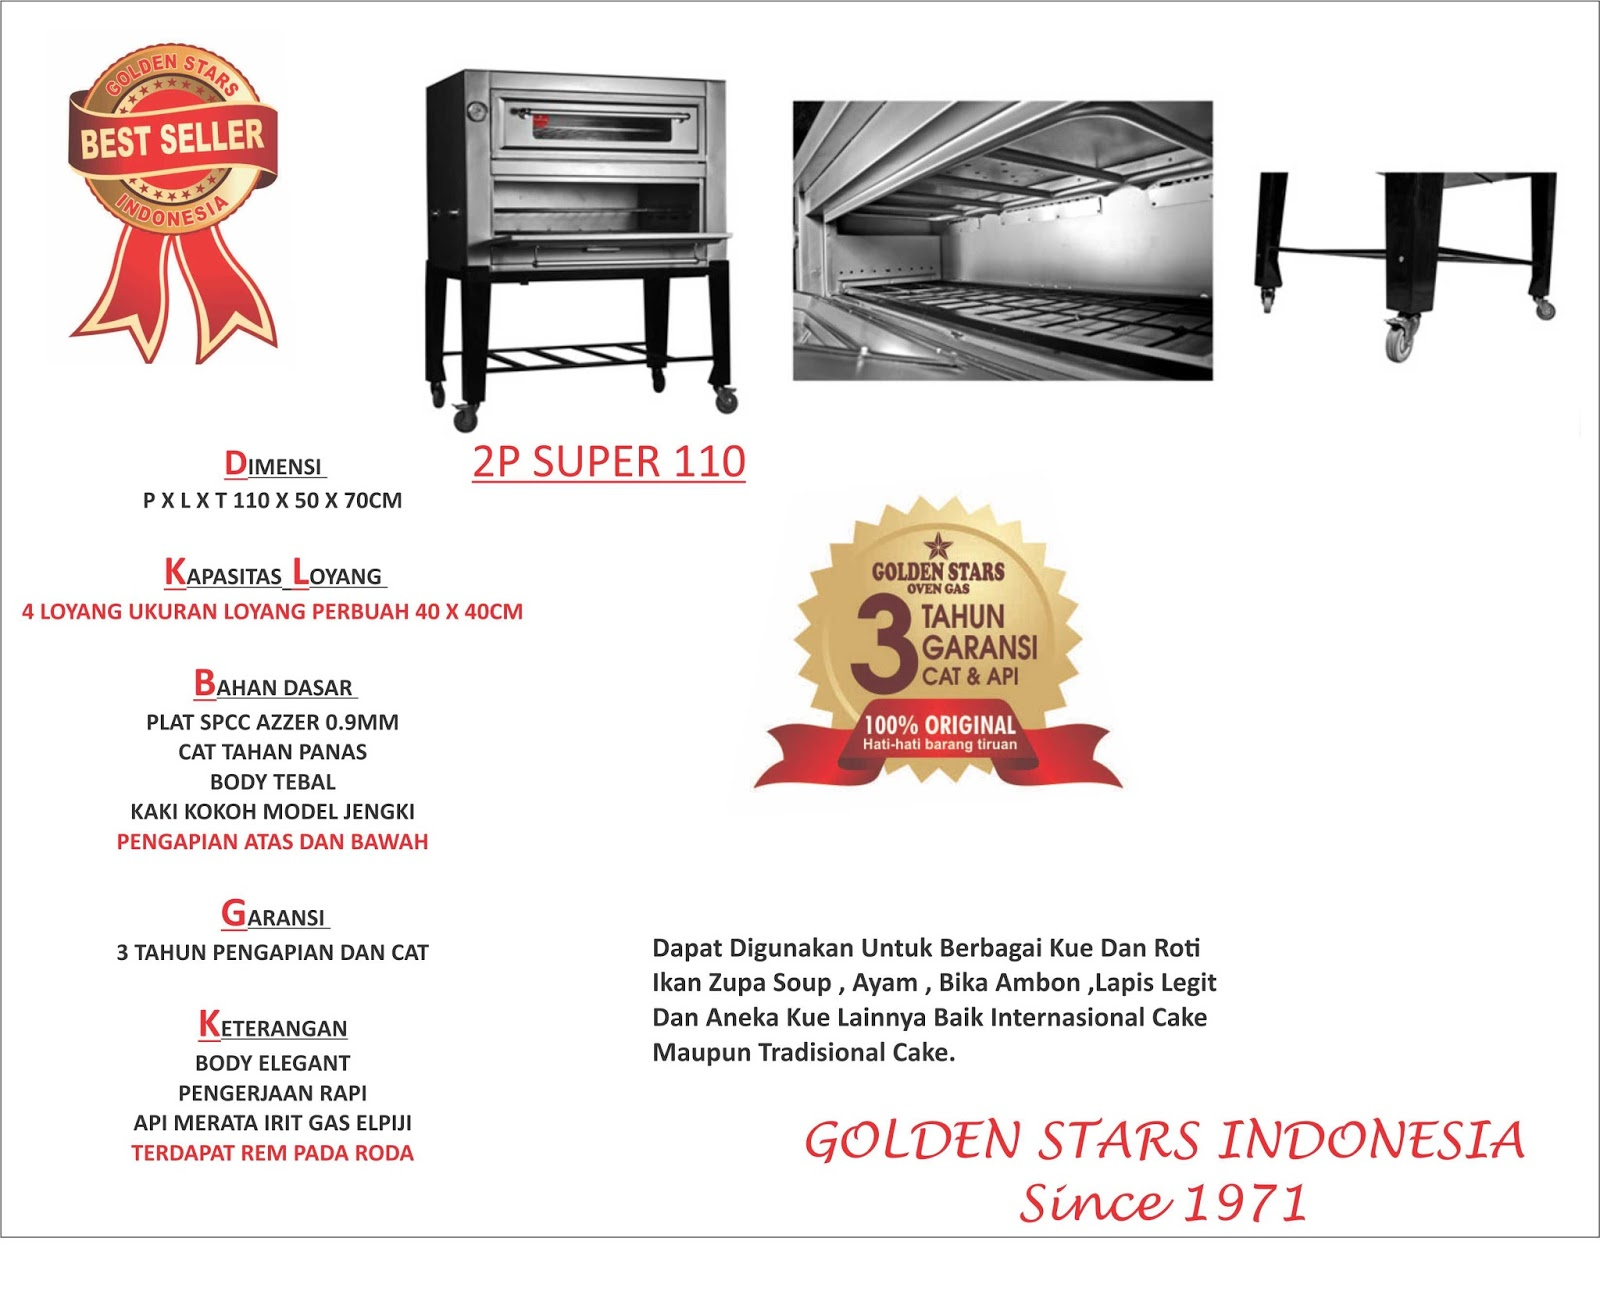 BEST SELLER OVEN GAS INDONESIA